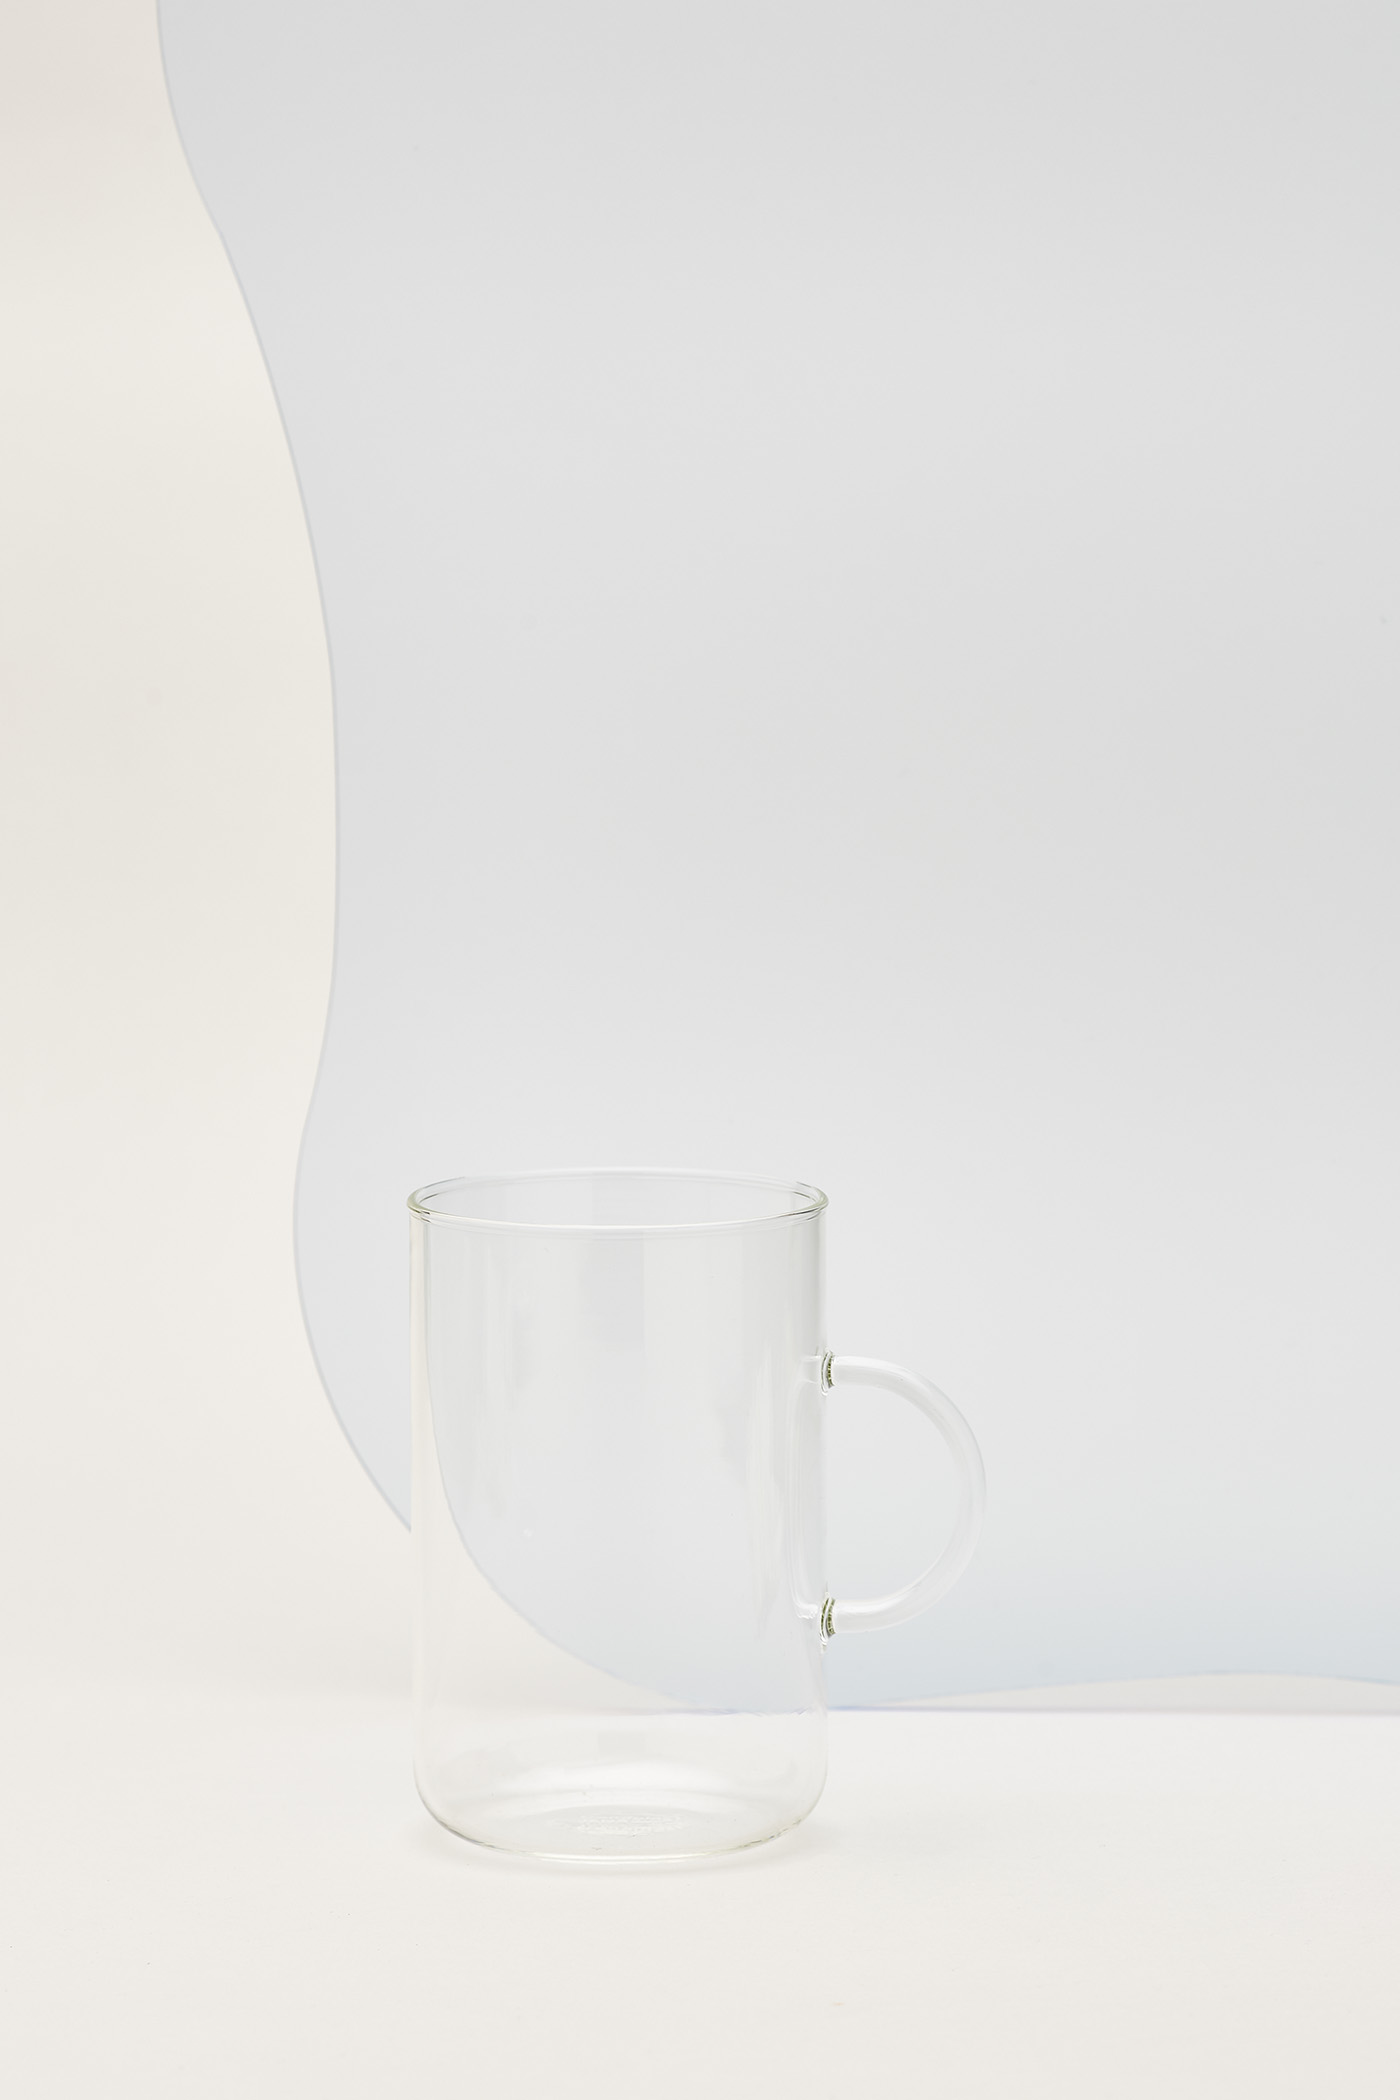 Trendglas Office XL Mug